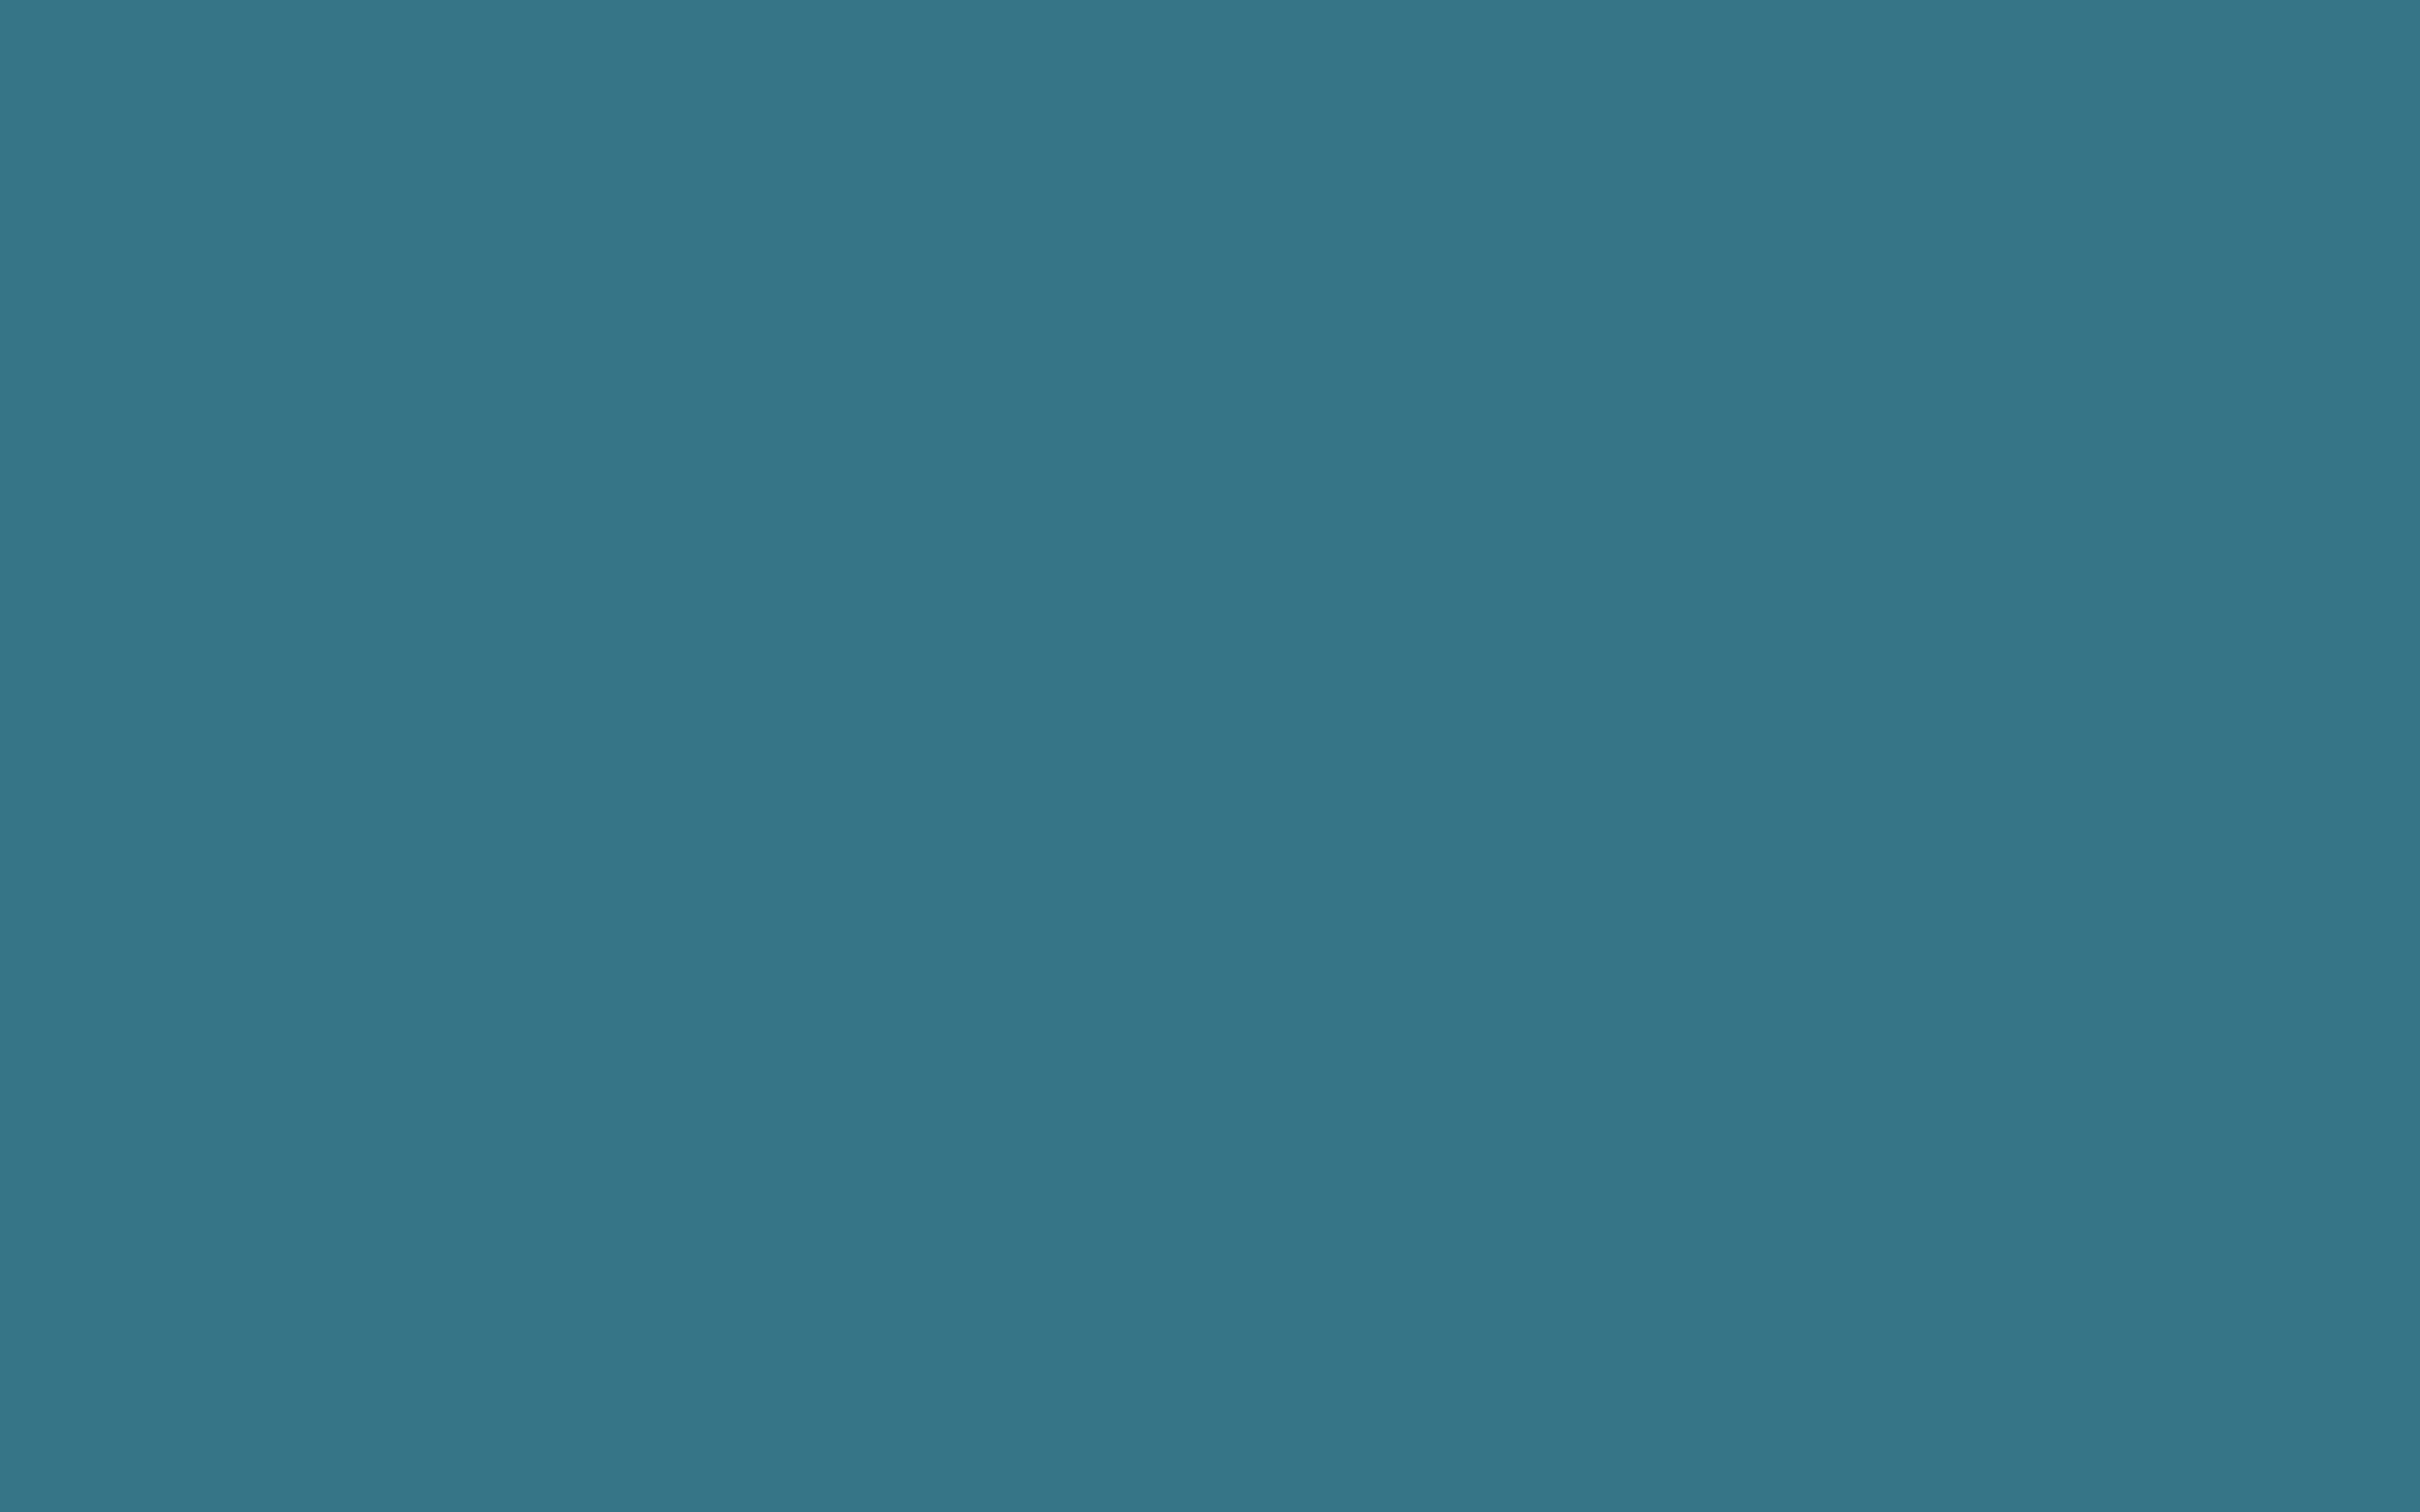 2880x1800 Teal Blue Solid Color Background